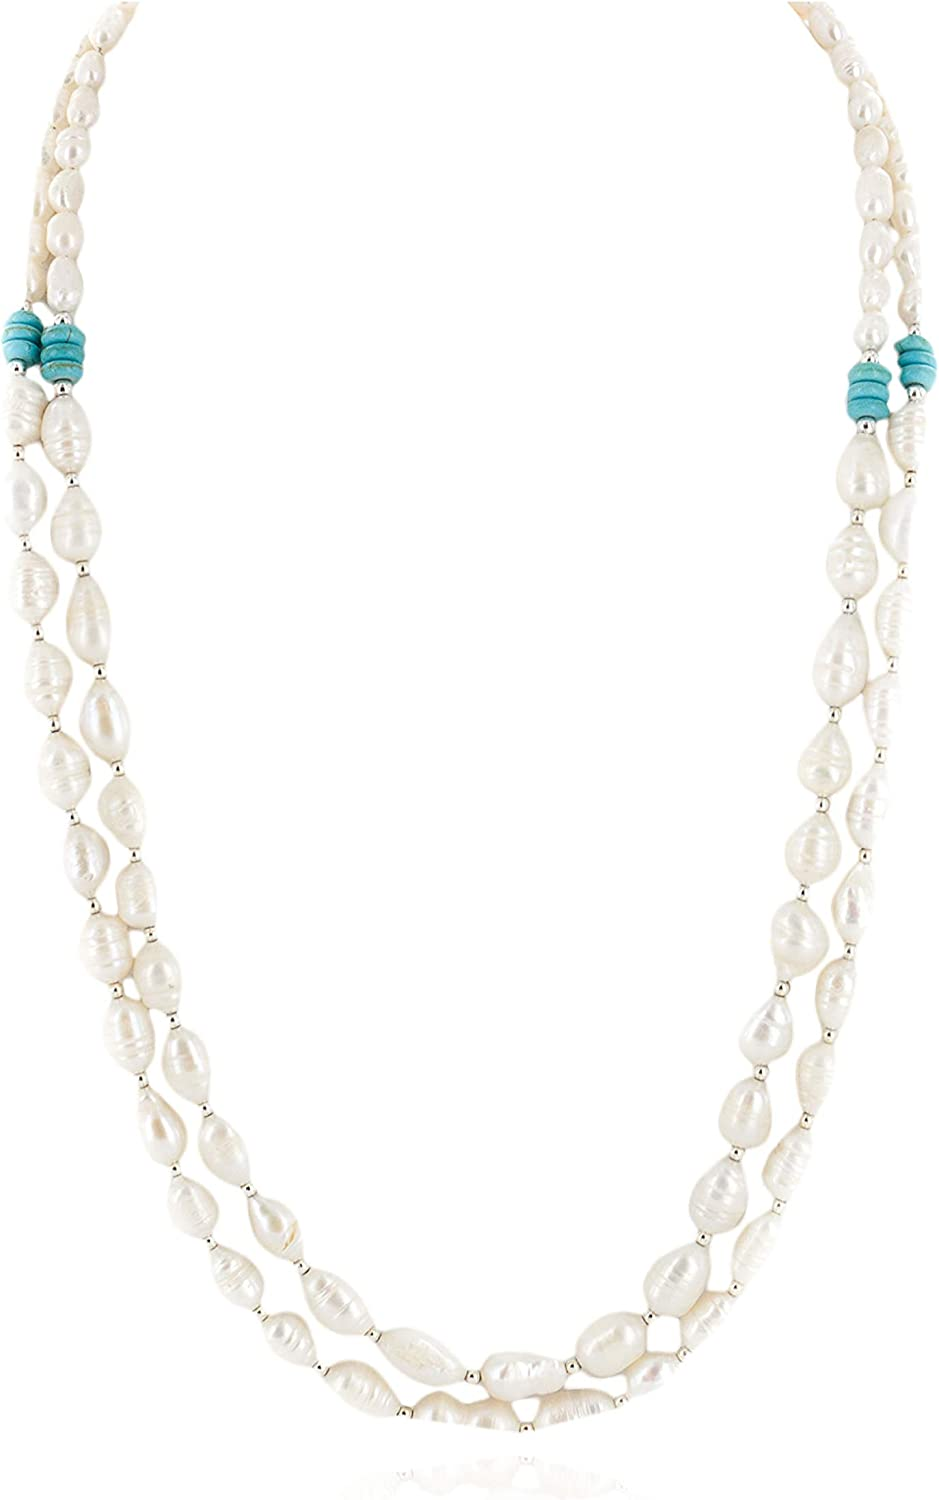 $300Tag Certified 2 Strand Navajo Cultured Pearl Native American Necklace 16098 Made by Loma Siiva